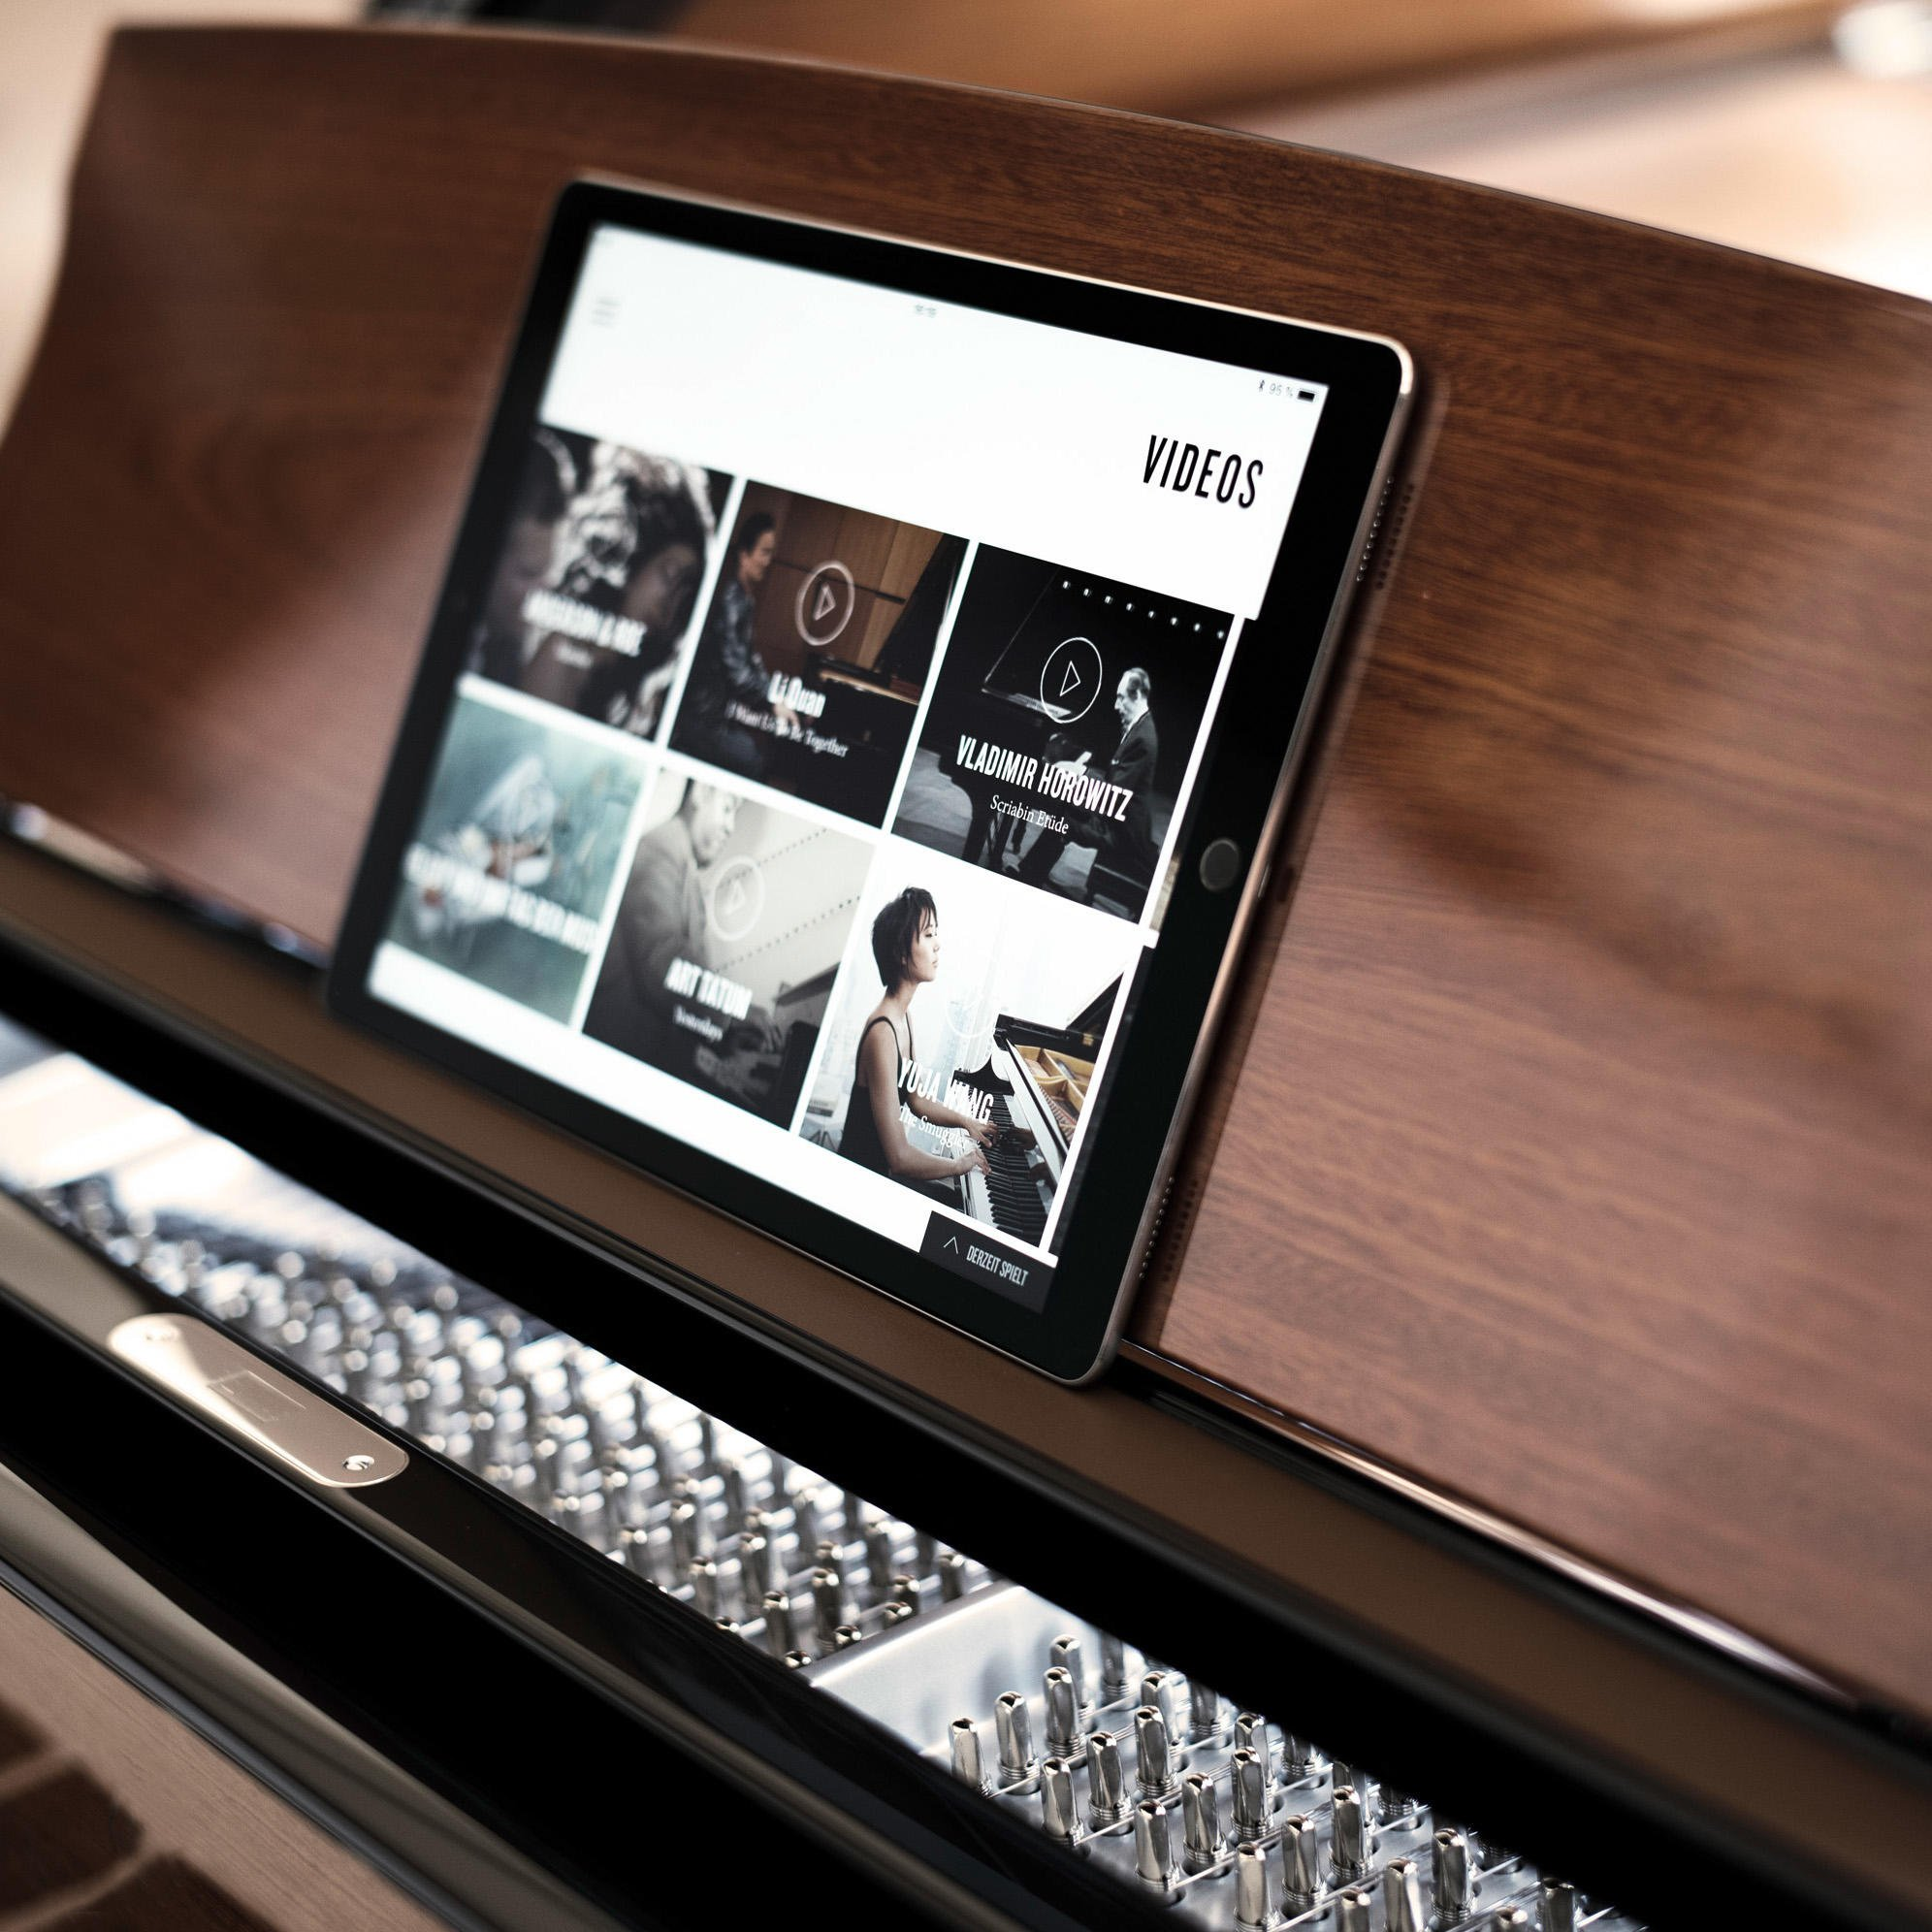 Steinway #Spirio features a library of thousands of high resolution performances by Steinway Artists. The library also includes significant historical performances by Steinway Immortals including Rachmaninoff, Gershwin, Horowitz and more. steinway.com/spirio